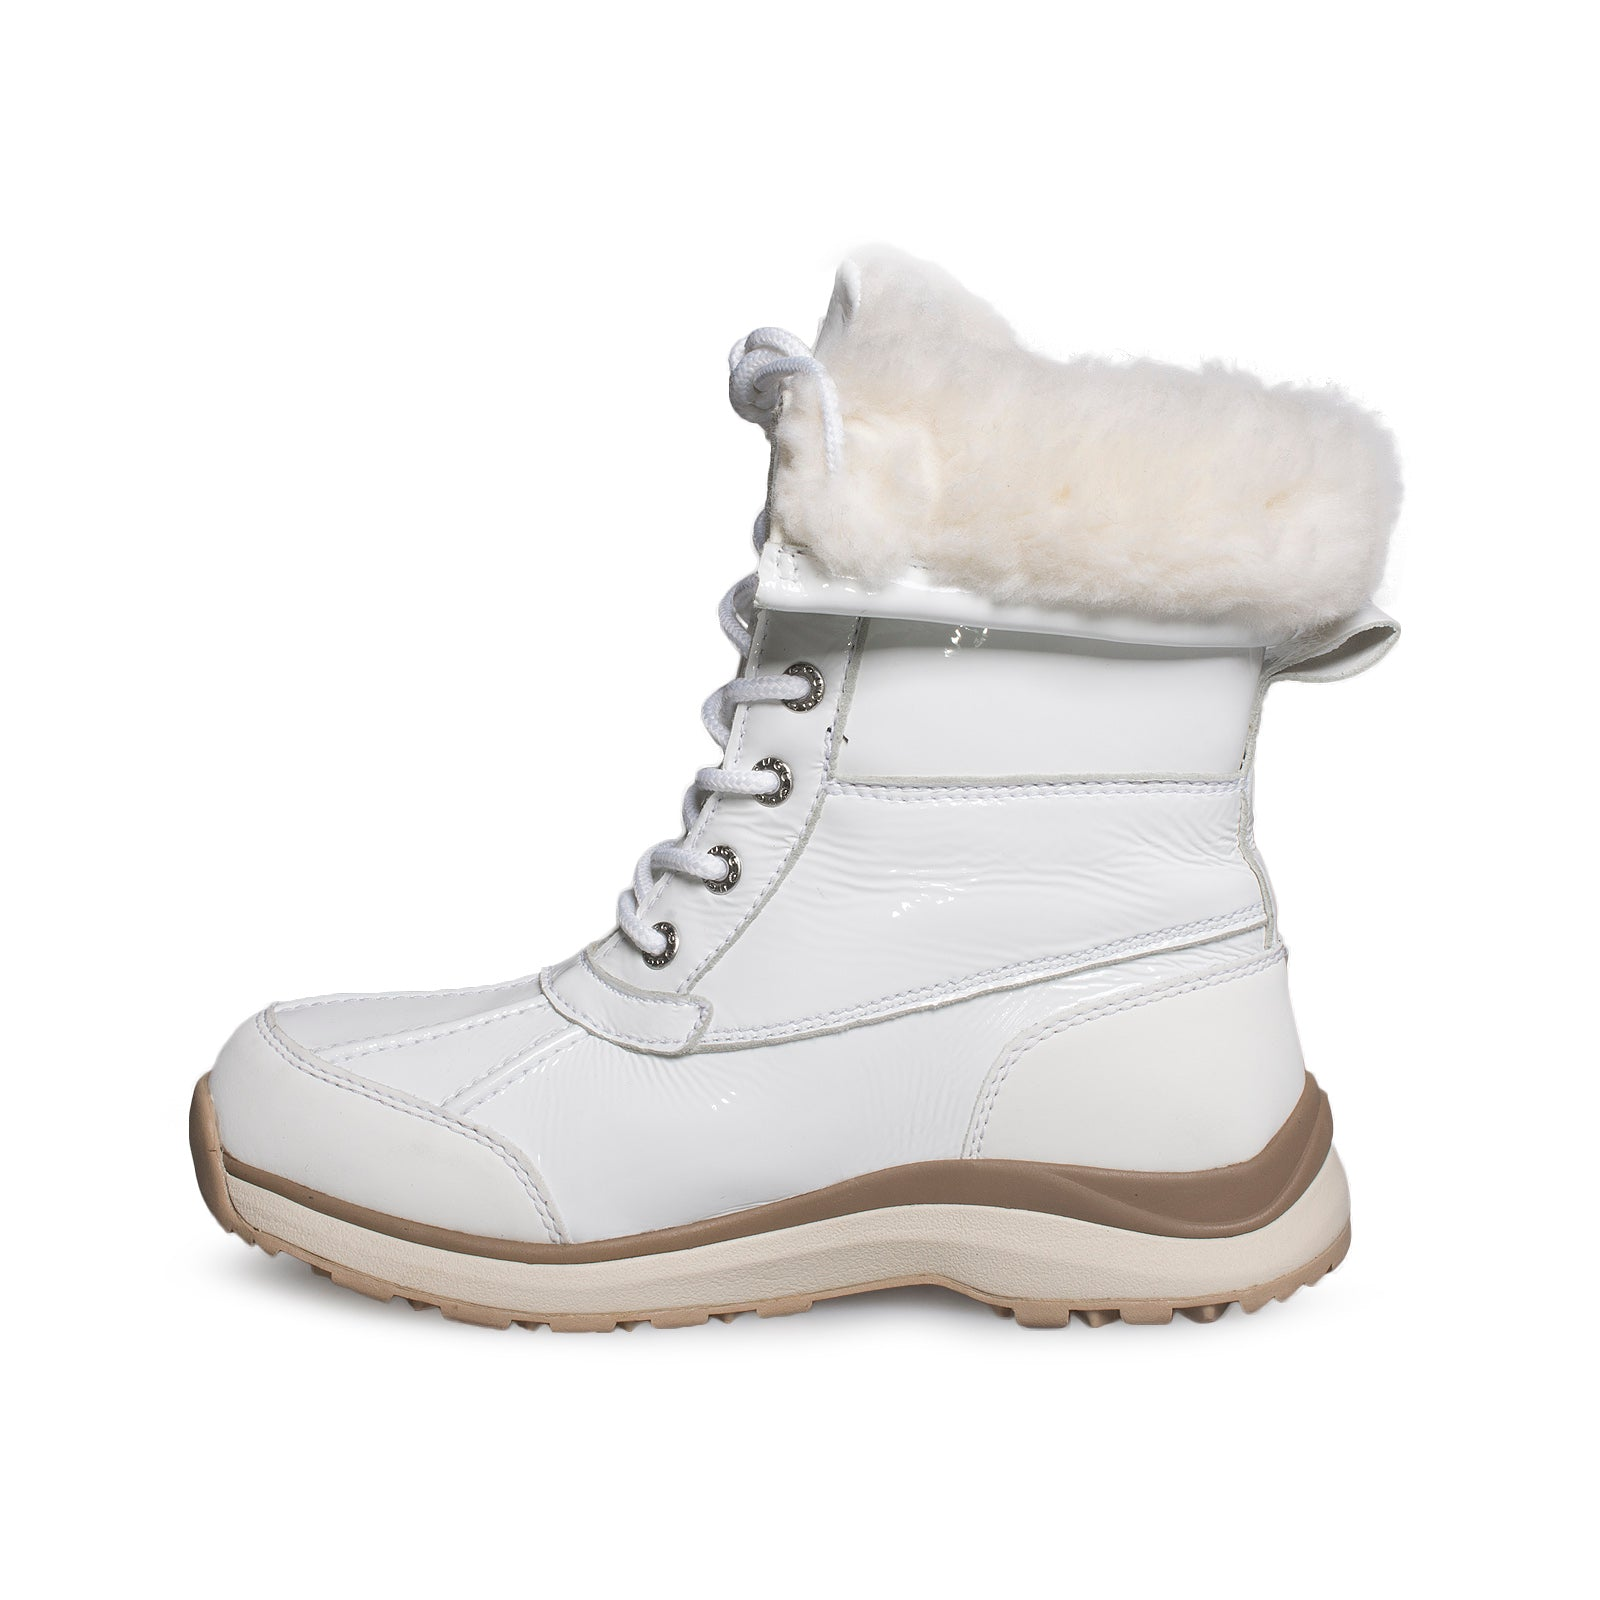 7c3be2111e3 UGG Adirondack III Patent Leather White Boots - Women's